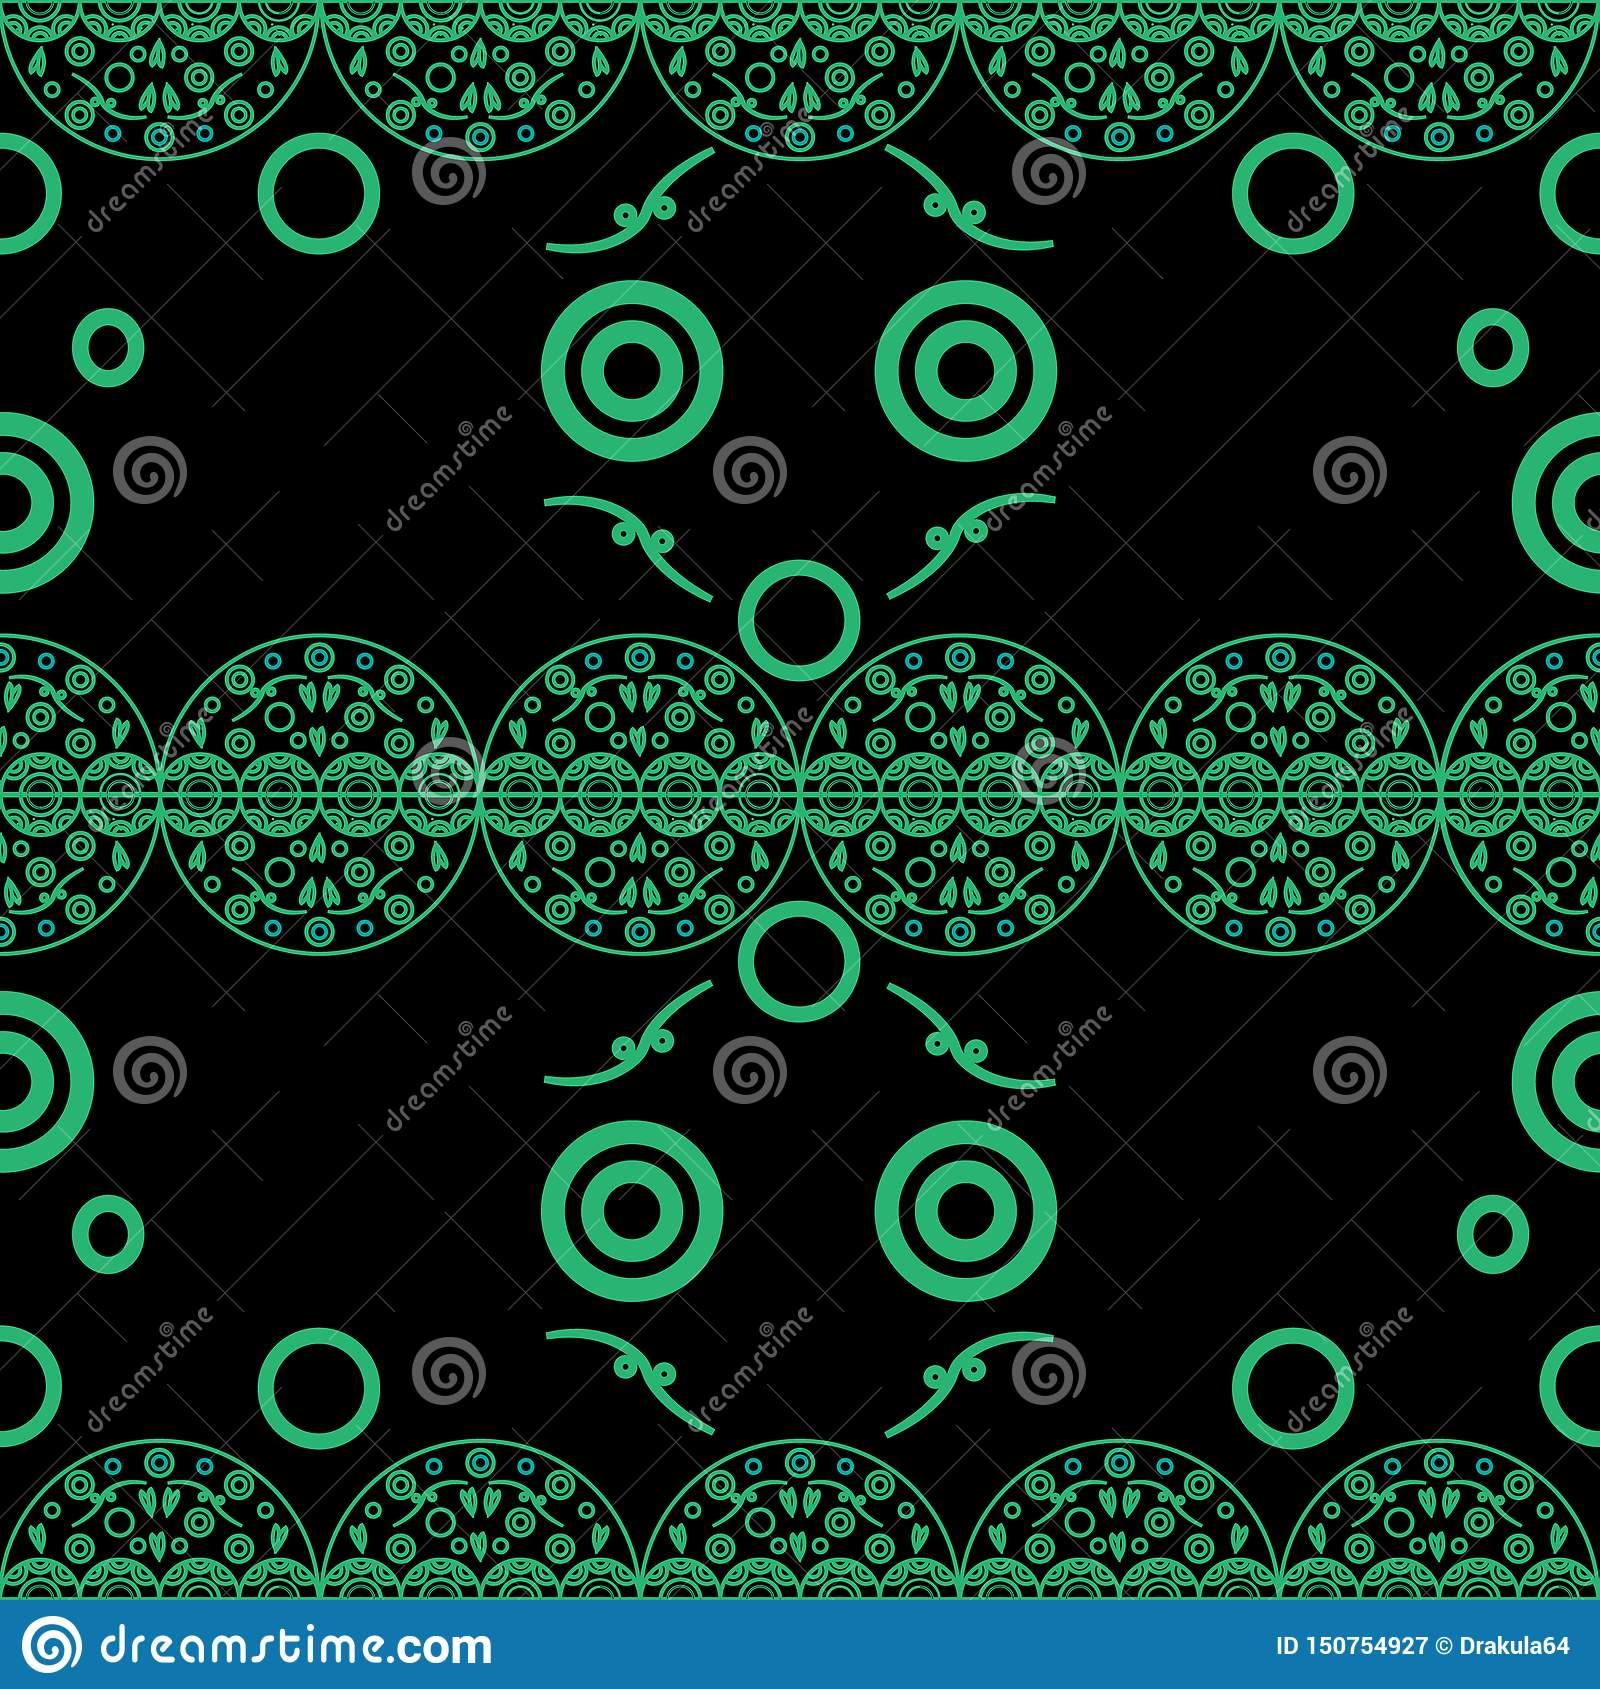 Seamless pattern delicate openwork circles green on black